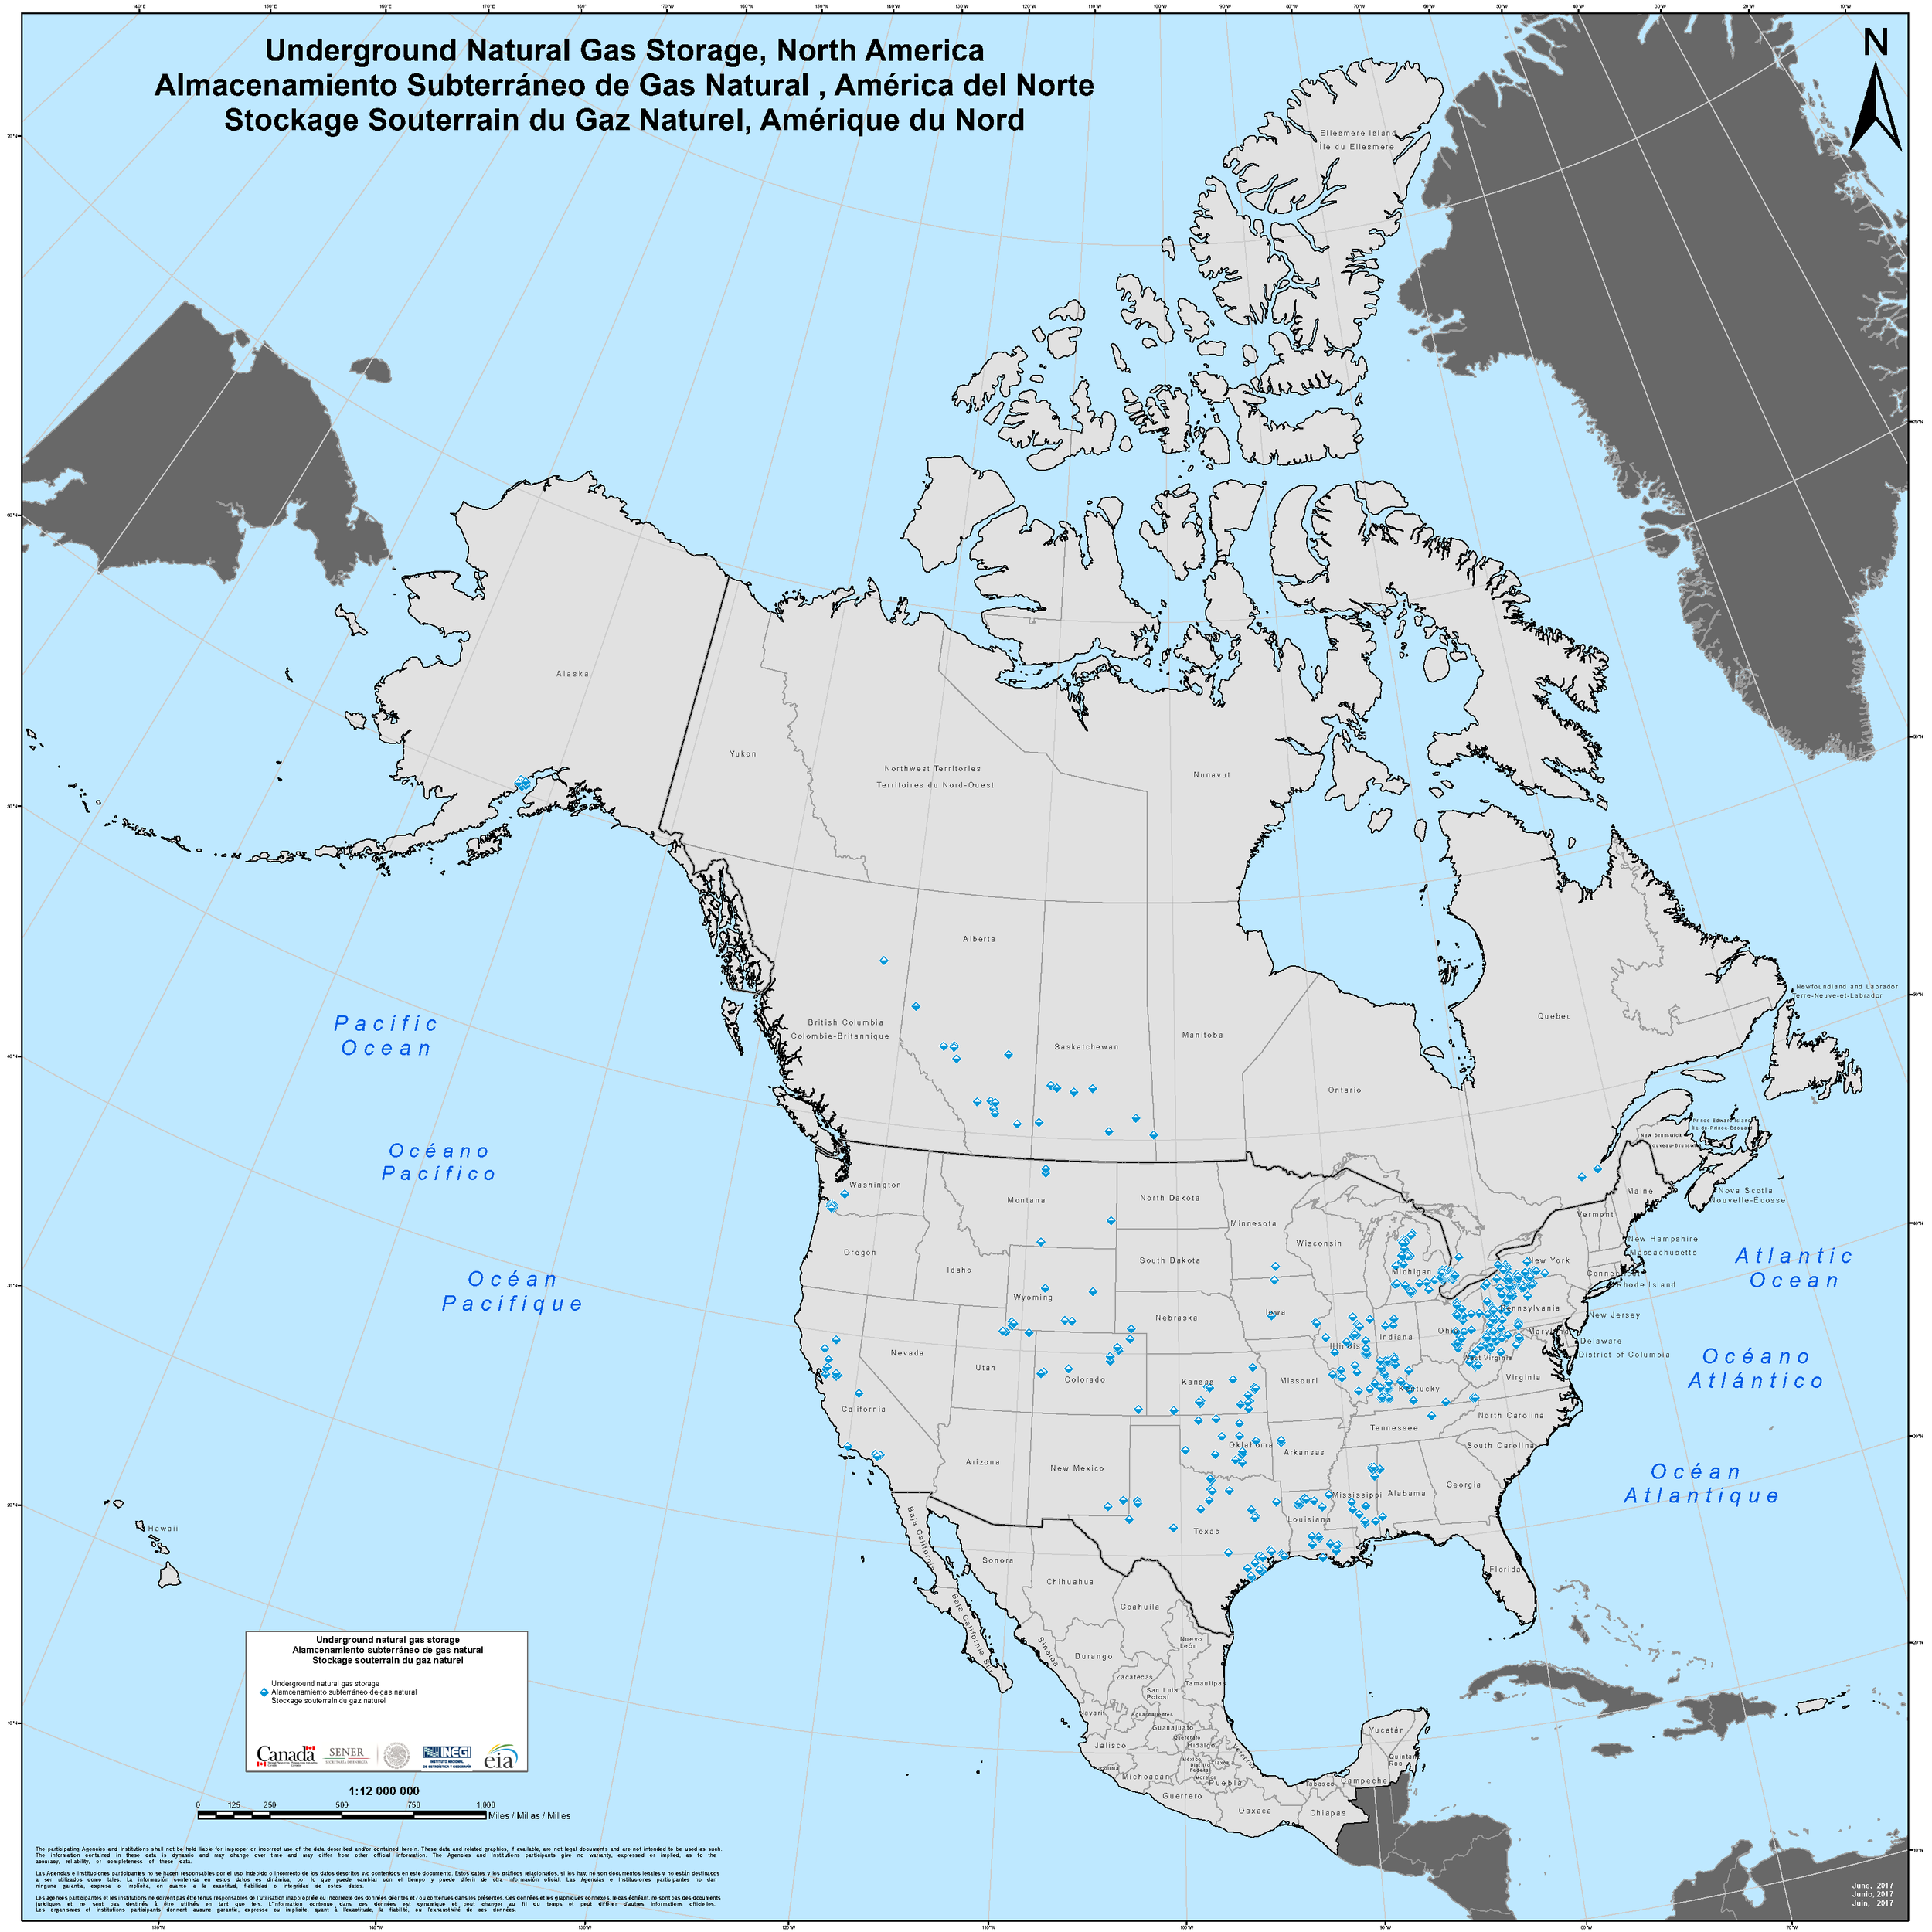 - Underground Natural Gas Storage Sites in North America